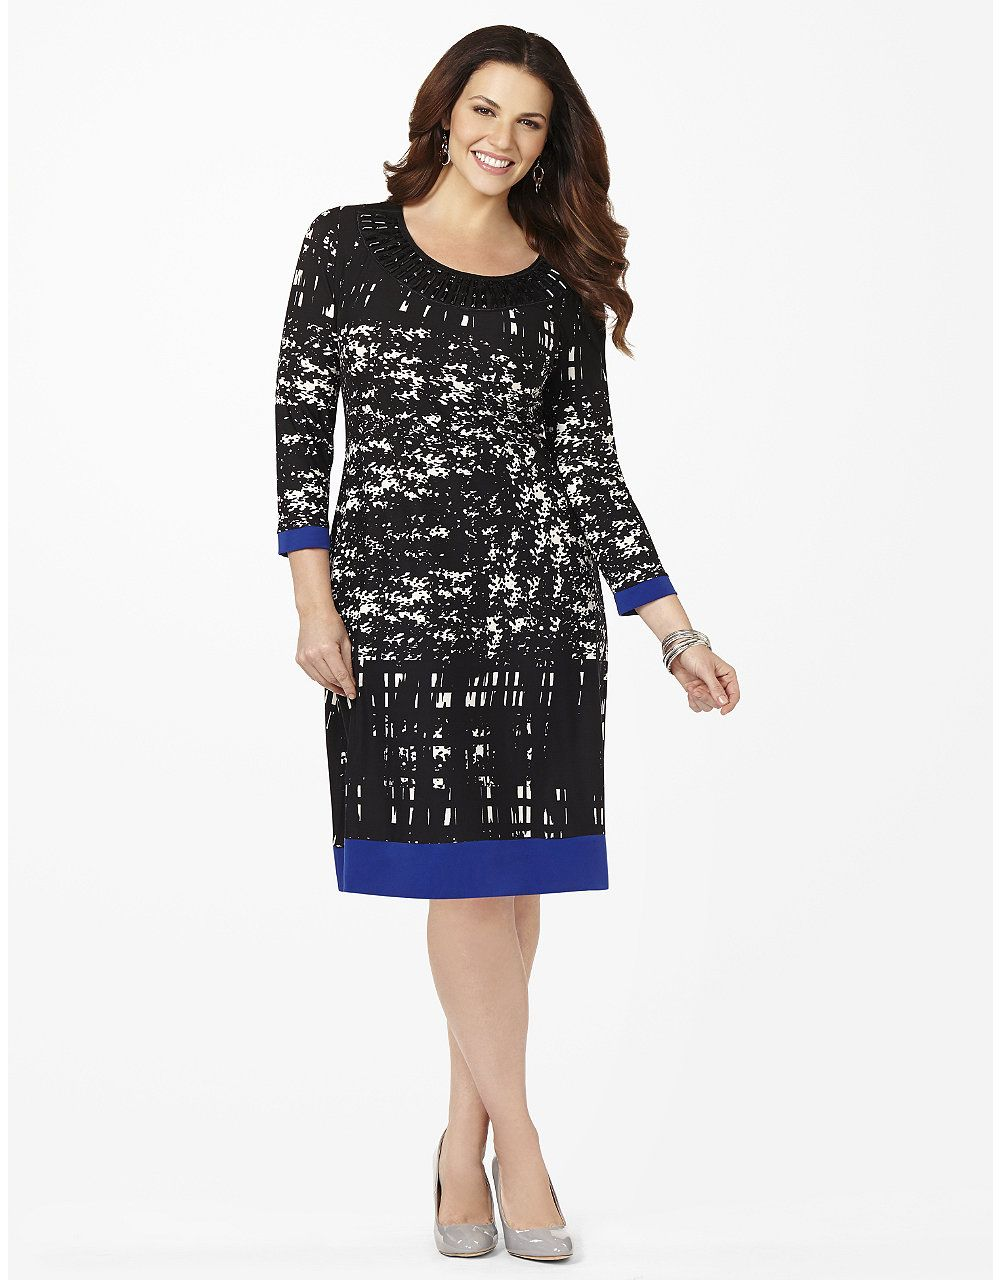 Geo Contrast Shift Dress Catherines For Me Pinterest Geo And